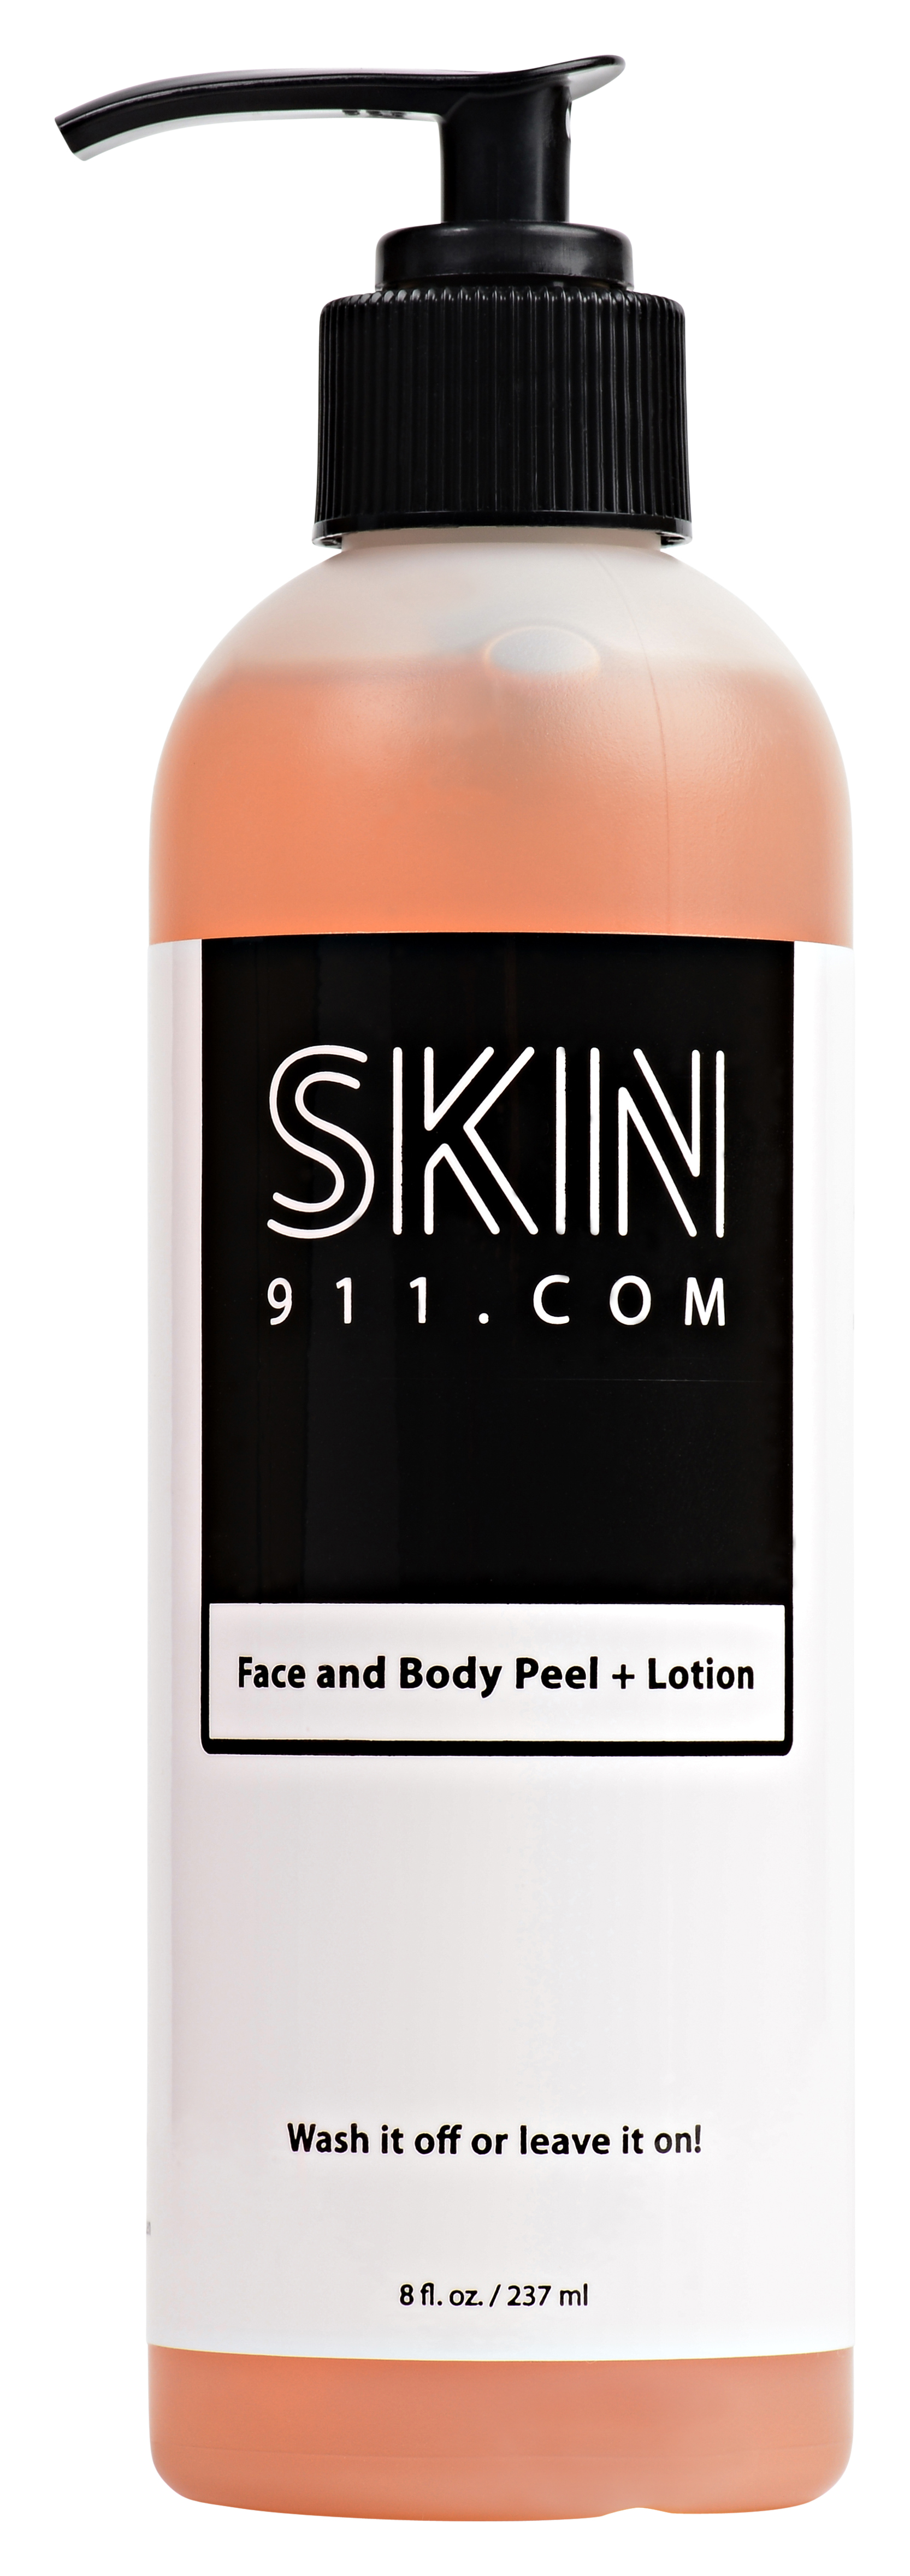 face-body-peel-lotion.jpg